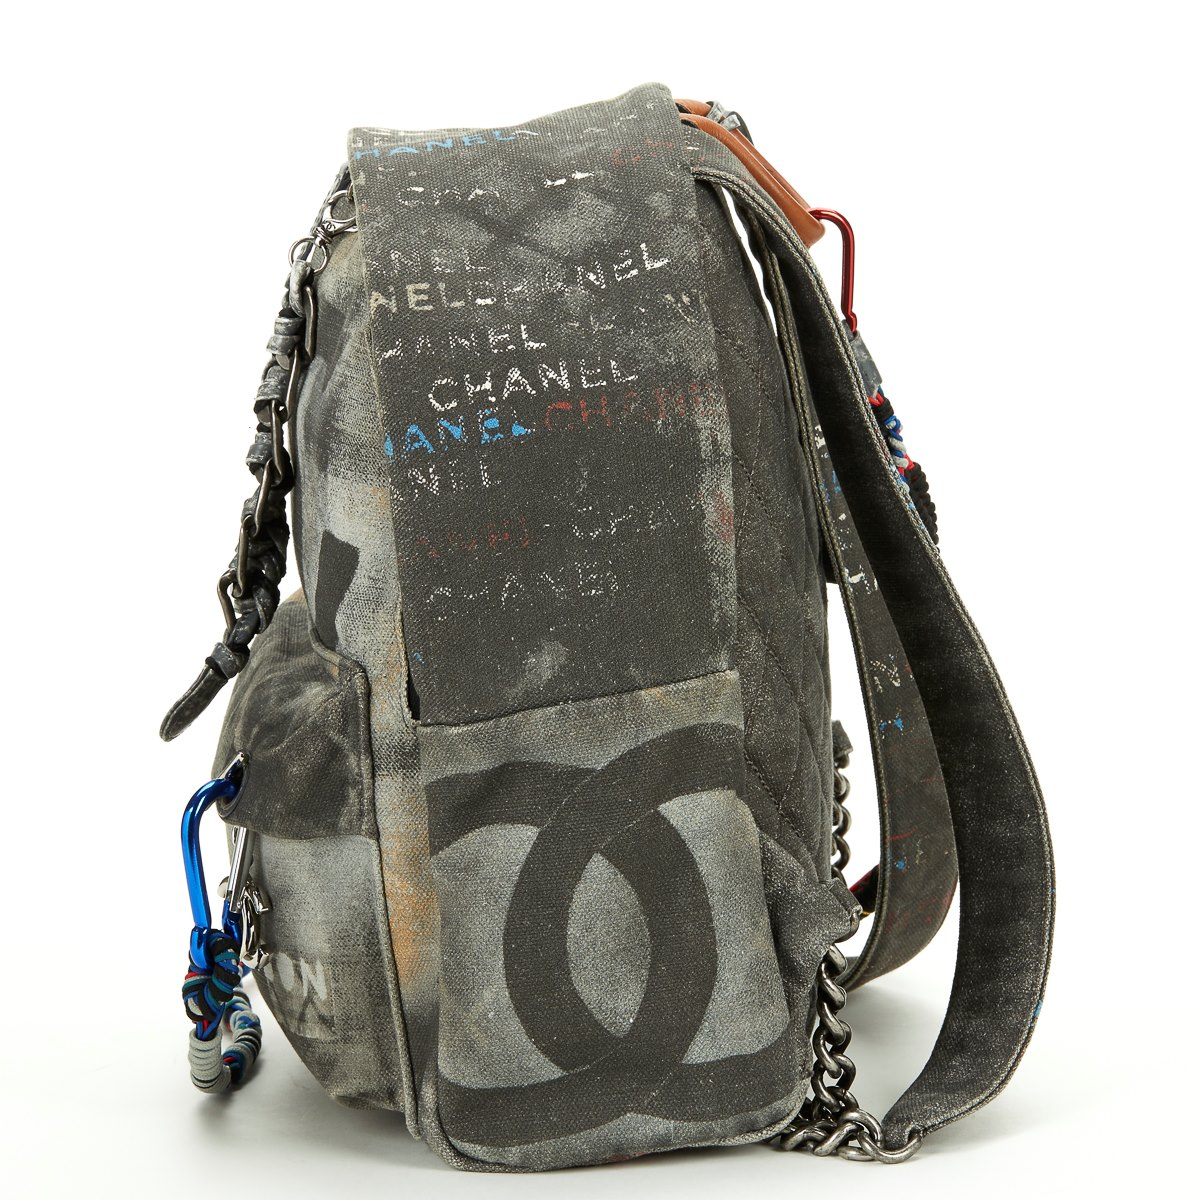 Chanel Medium Graffiti Backpack 2014 HB326